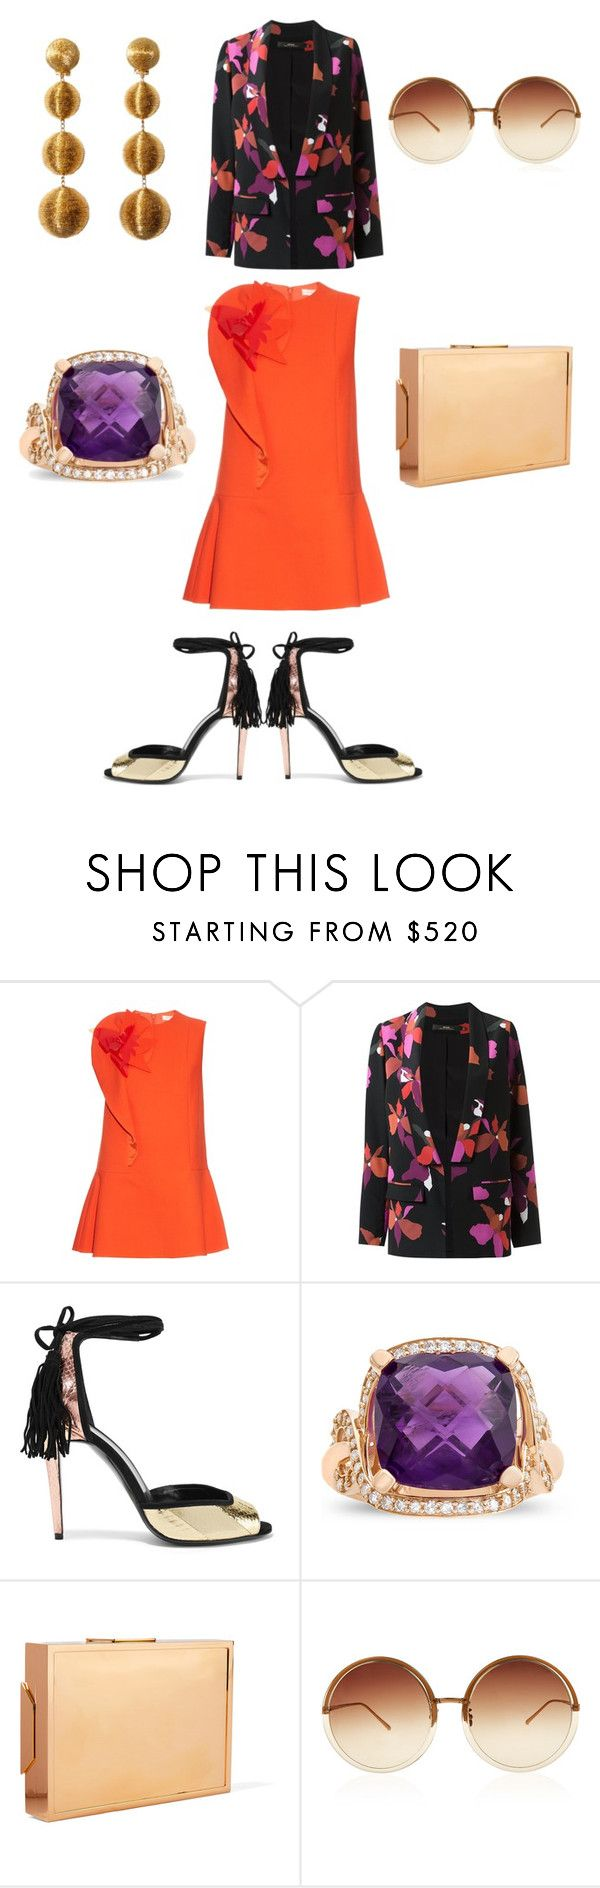 """Center of Attention"" by sade-aladejana-lewis on Polyvore featuring Delpozo, Andrea Marques, Rebecca de Ravenel, Pierre Hardy, Lee Savage, Linda Farrow, WorkWear, outfit and polyvorefashion"